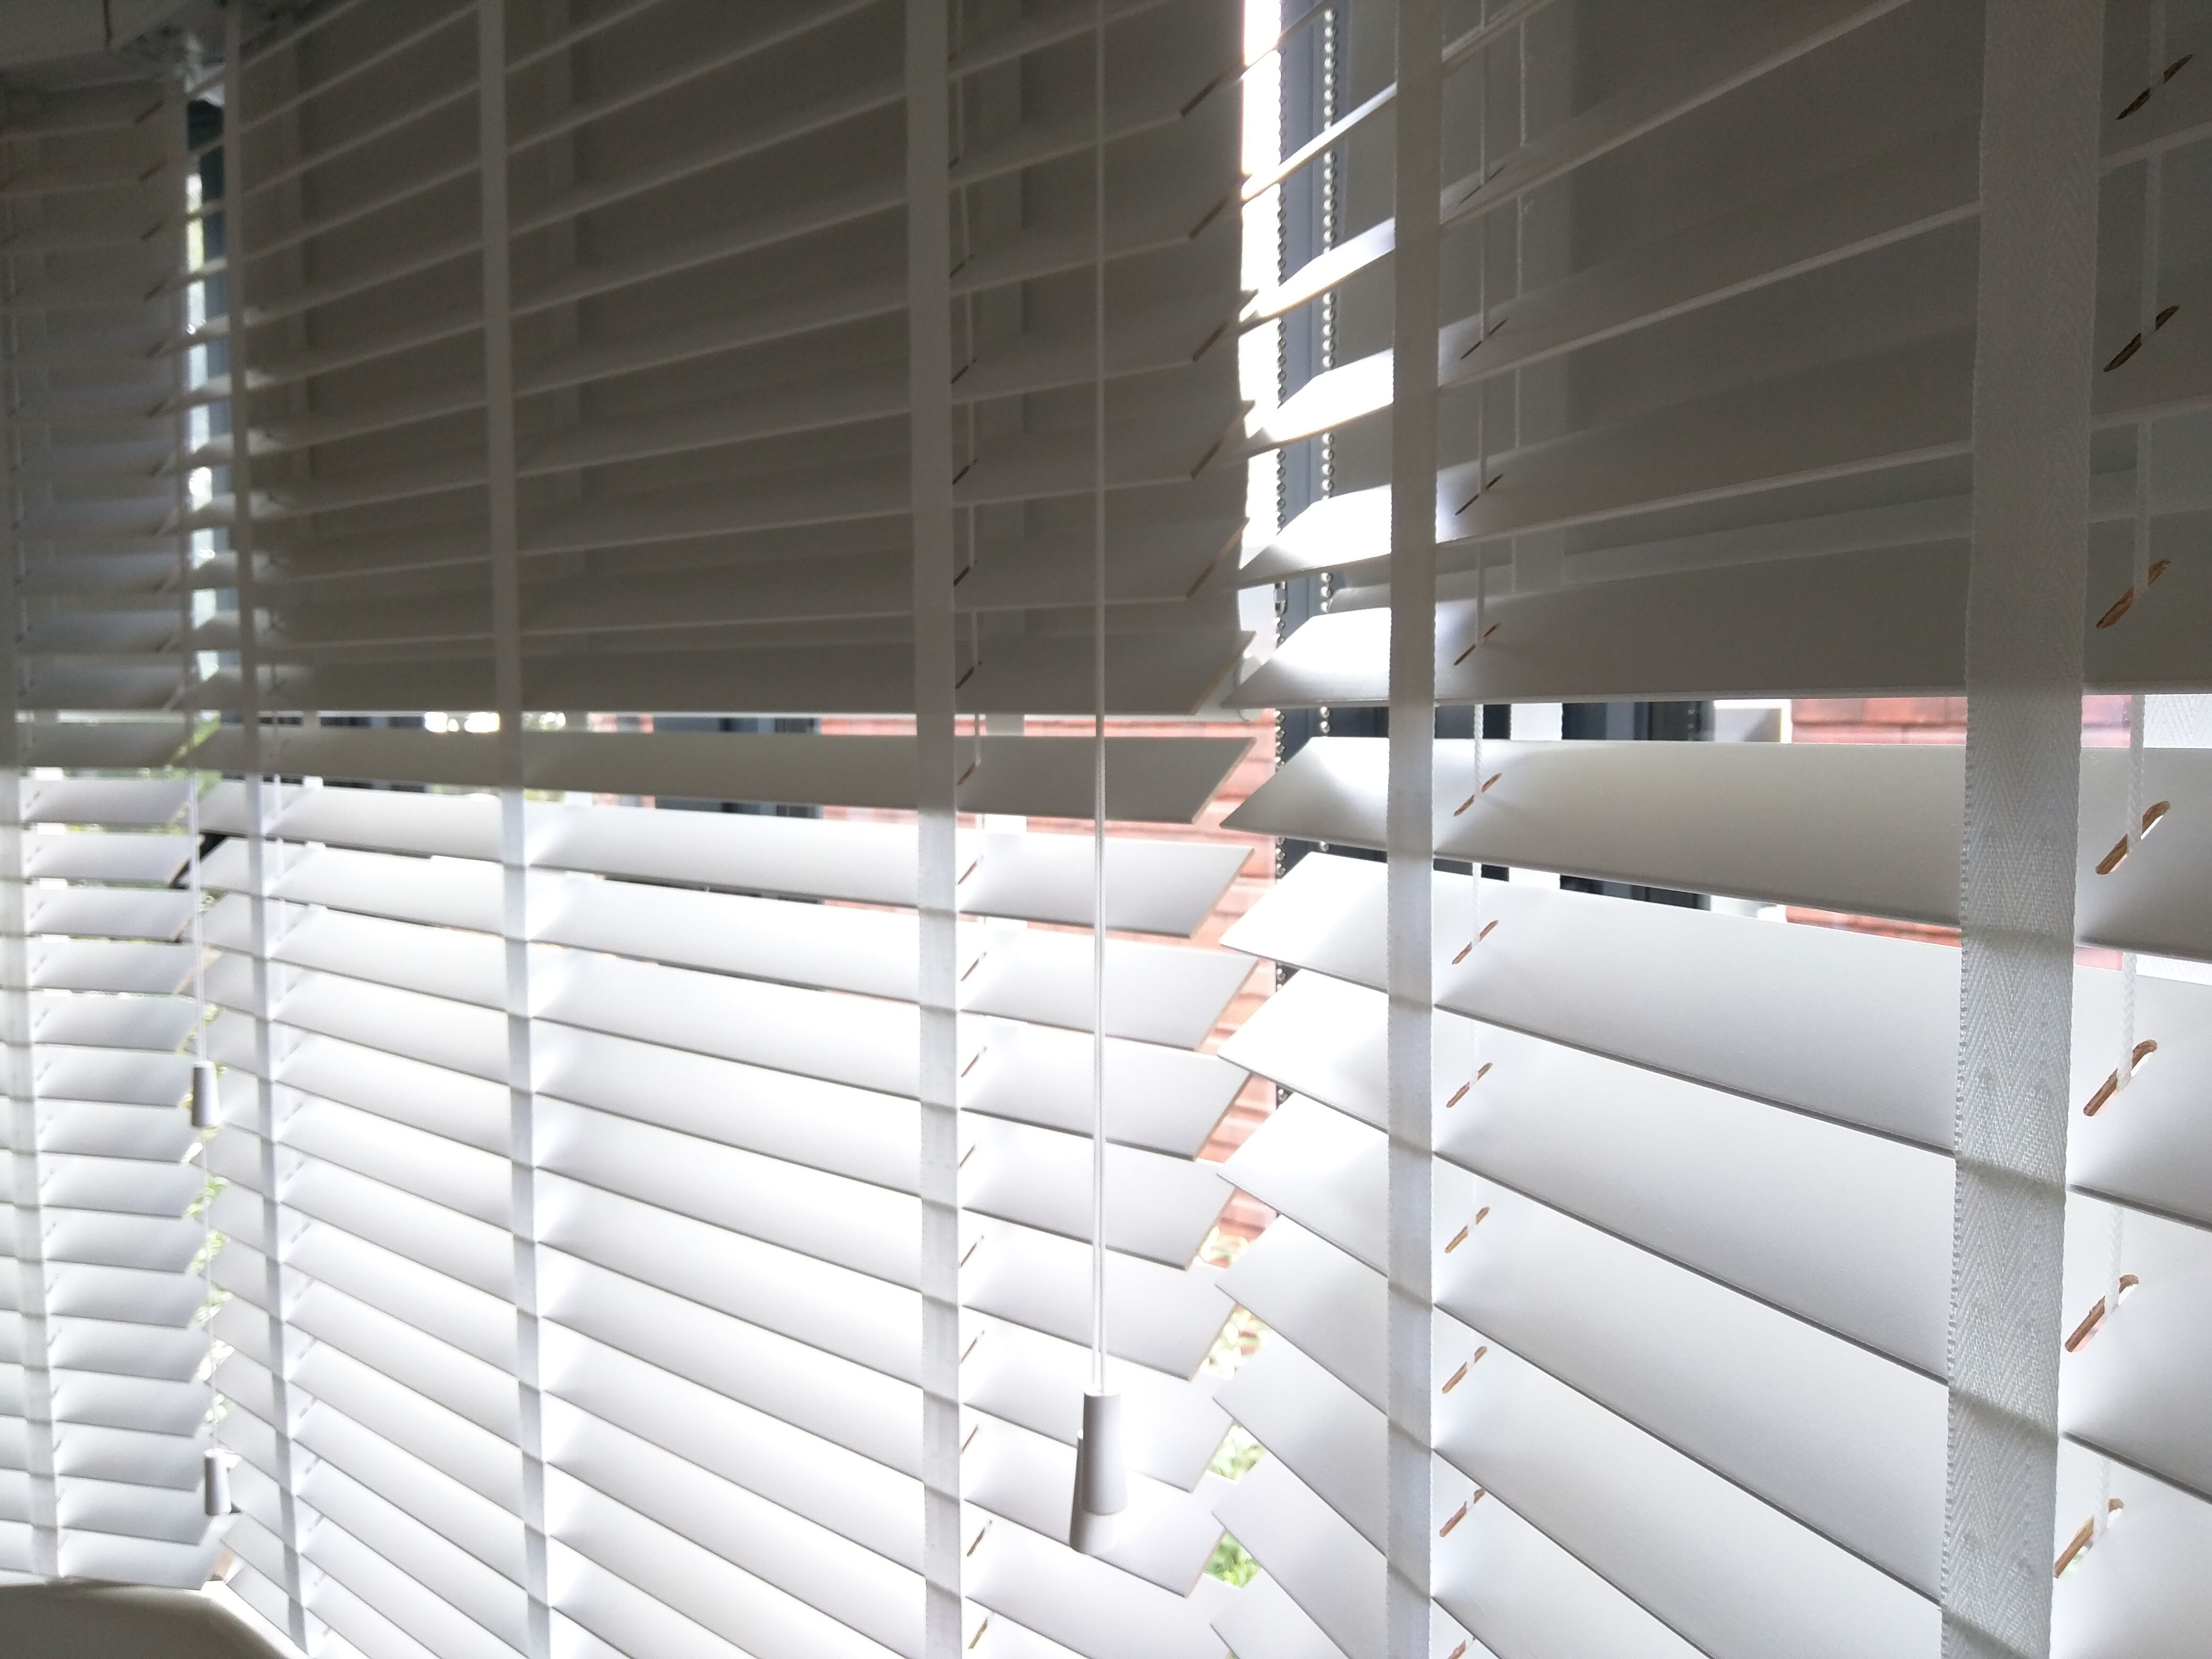 Wood Venetian Blinds With Blackout Roller Blinds Behind Fitted To Bay Window In Bedroom In Hove Double Dual B Wooden Blinds Diy Blinds Curtains With Blinds